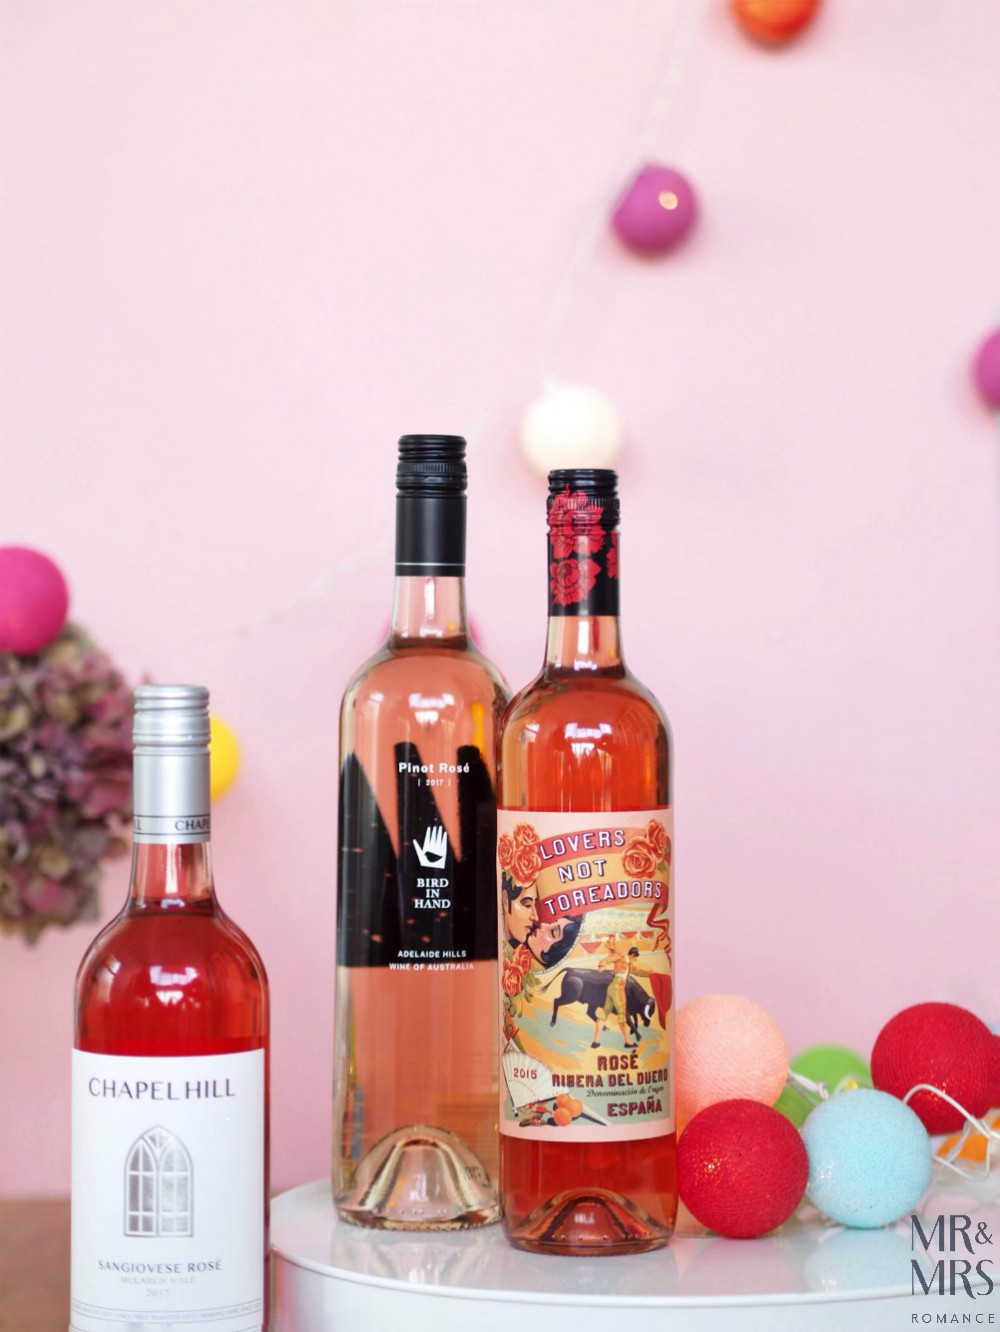 New rosé collection